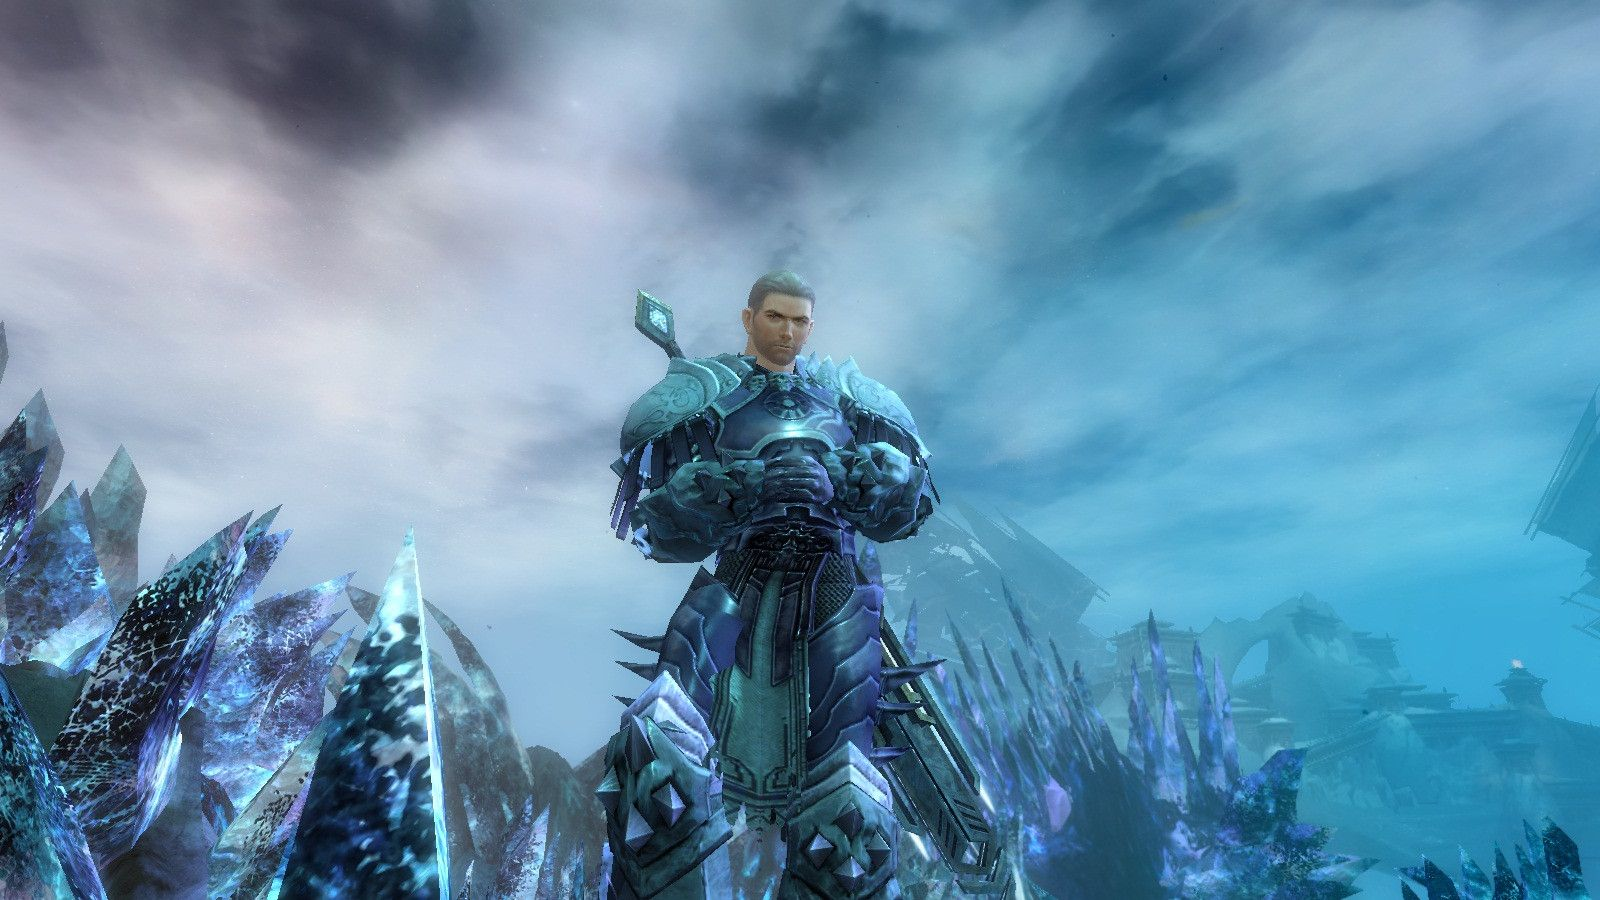 Free download Guild Wars 2 Guardian Wallpapers [1600x900] for your